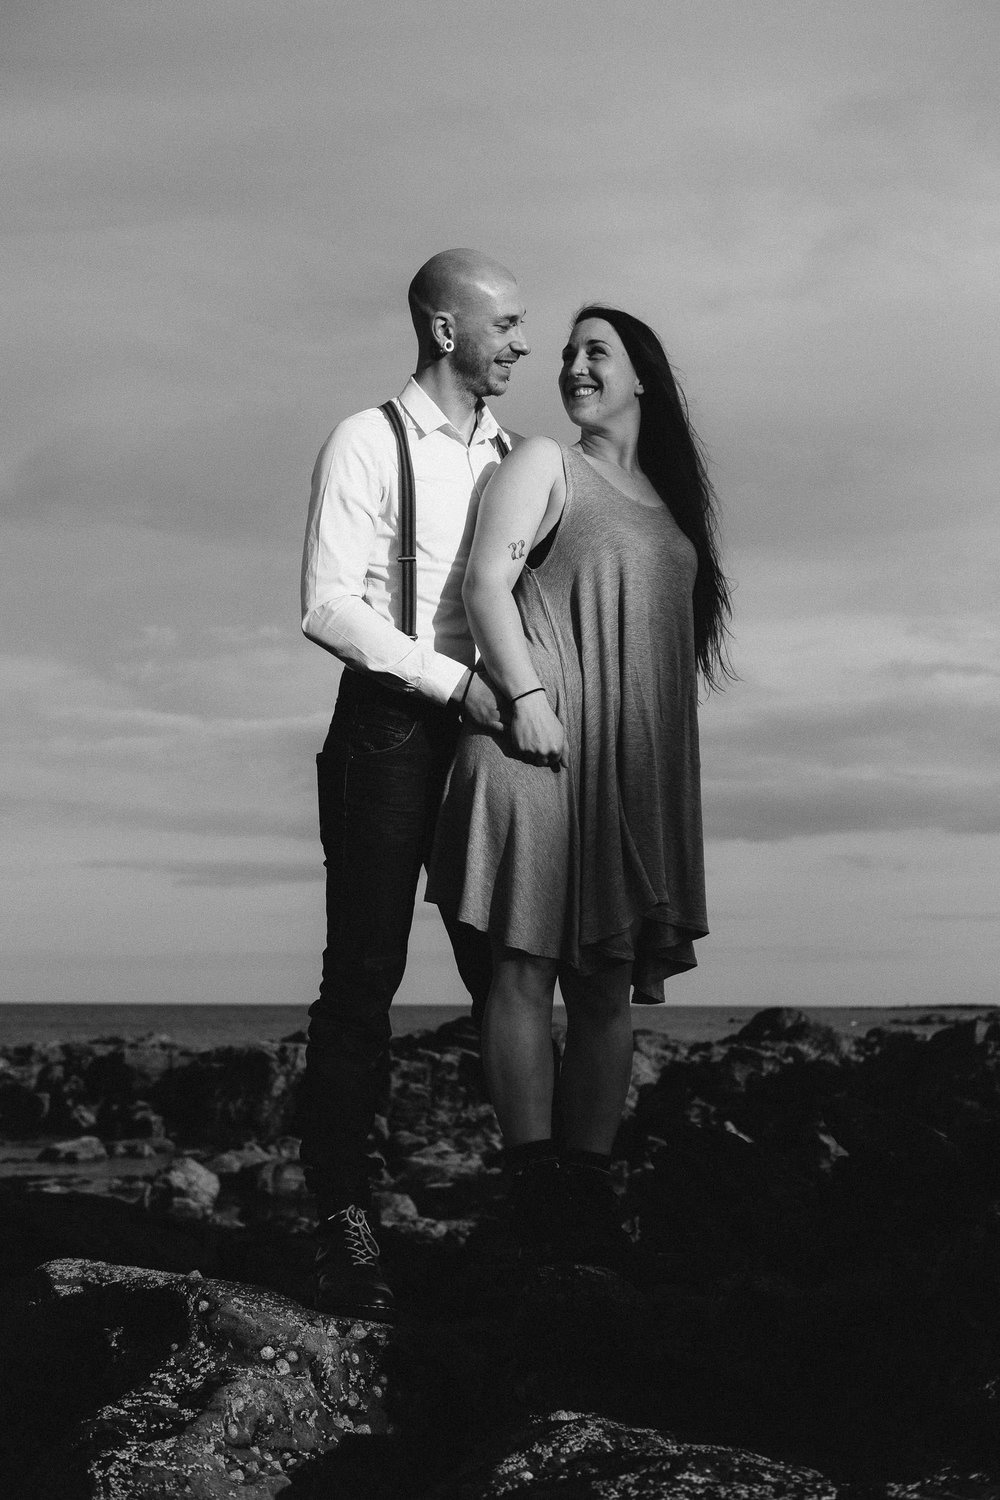 Back and white photo of couple smiling at each other on rocky beach